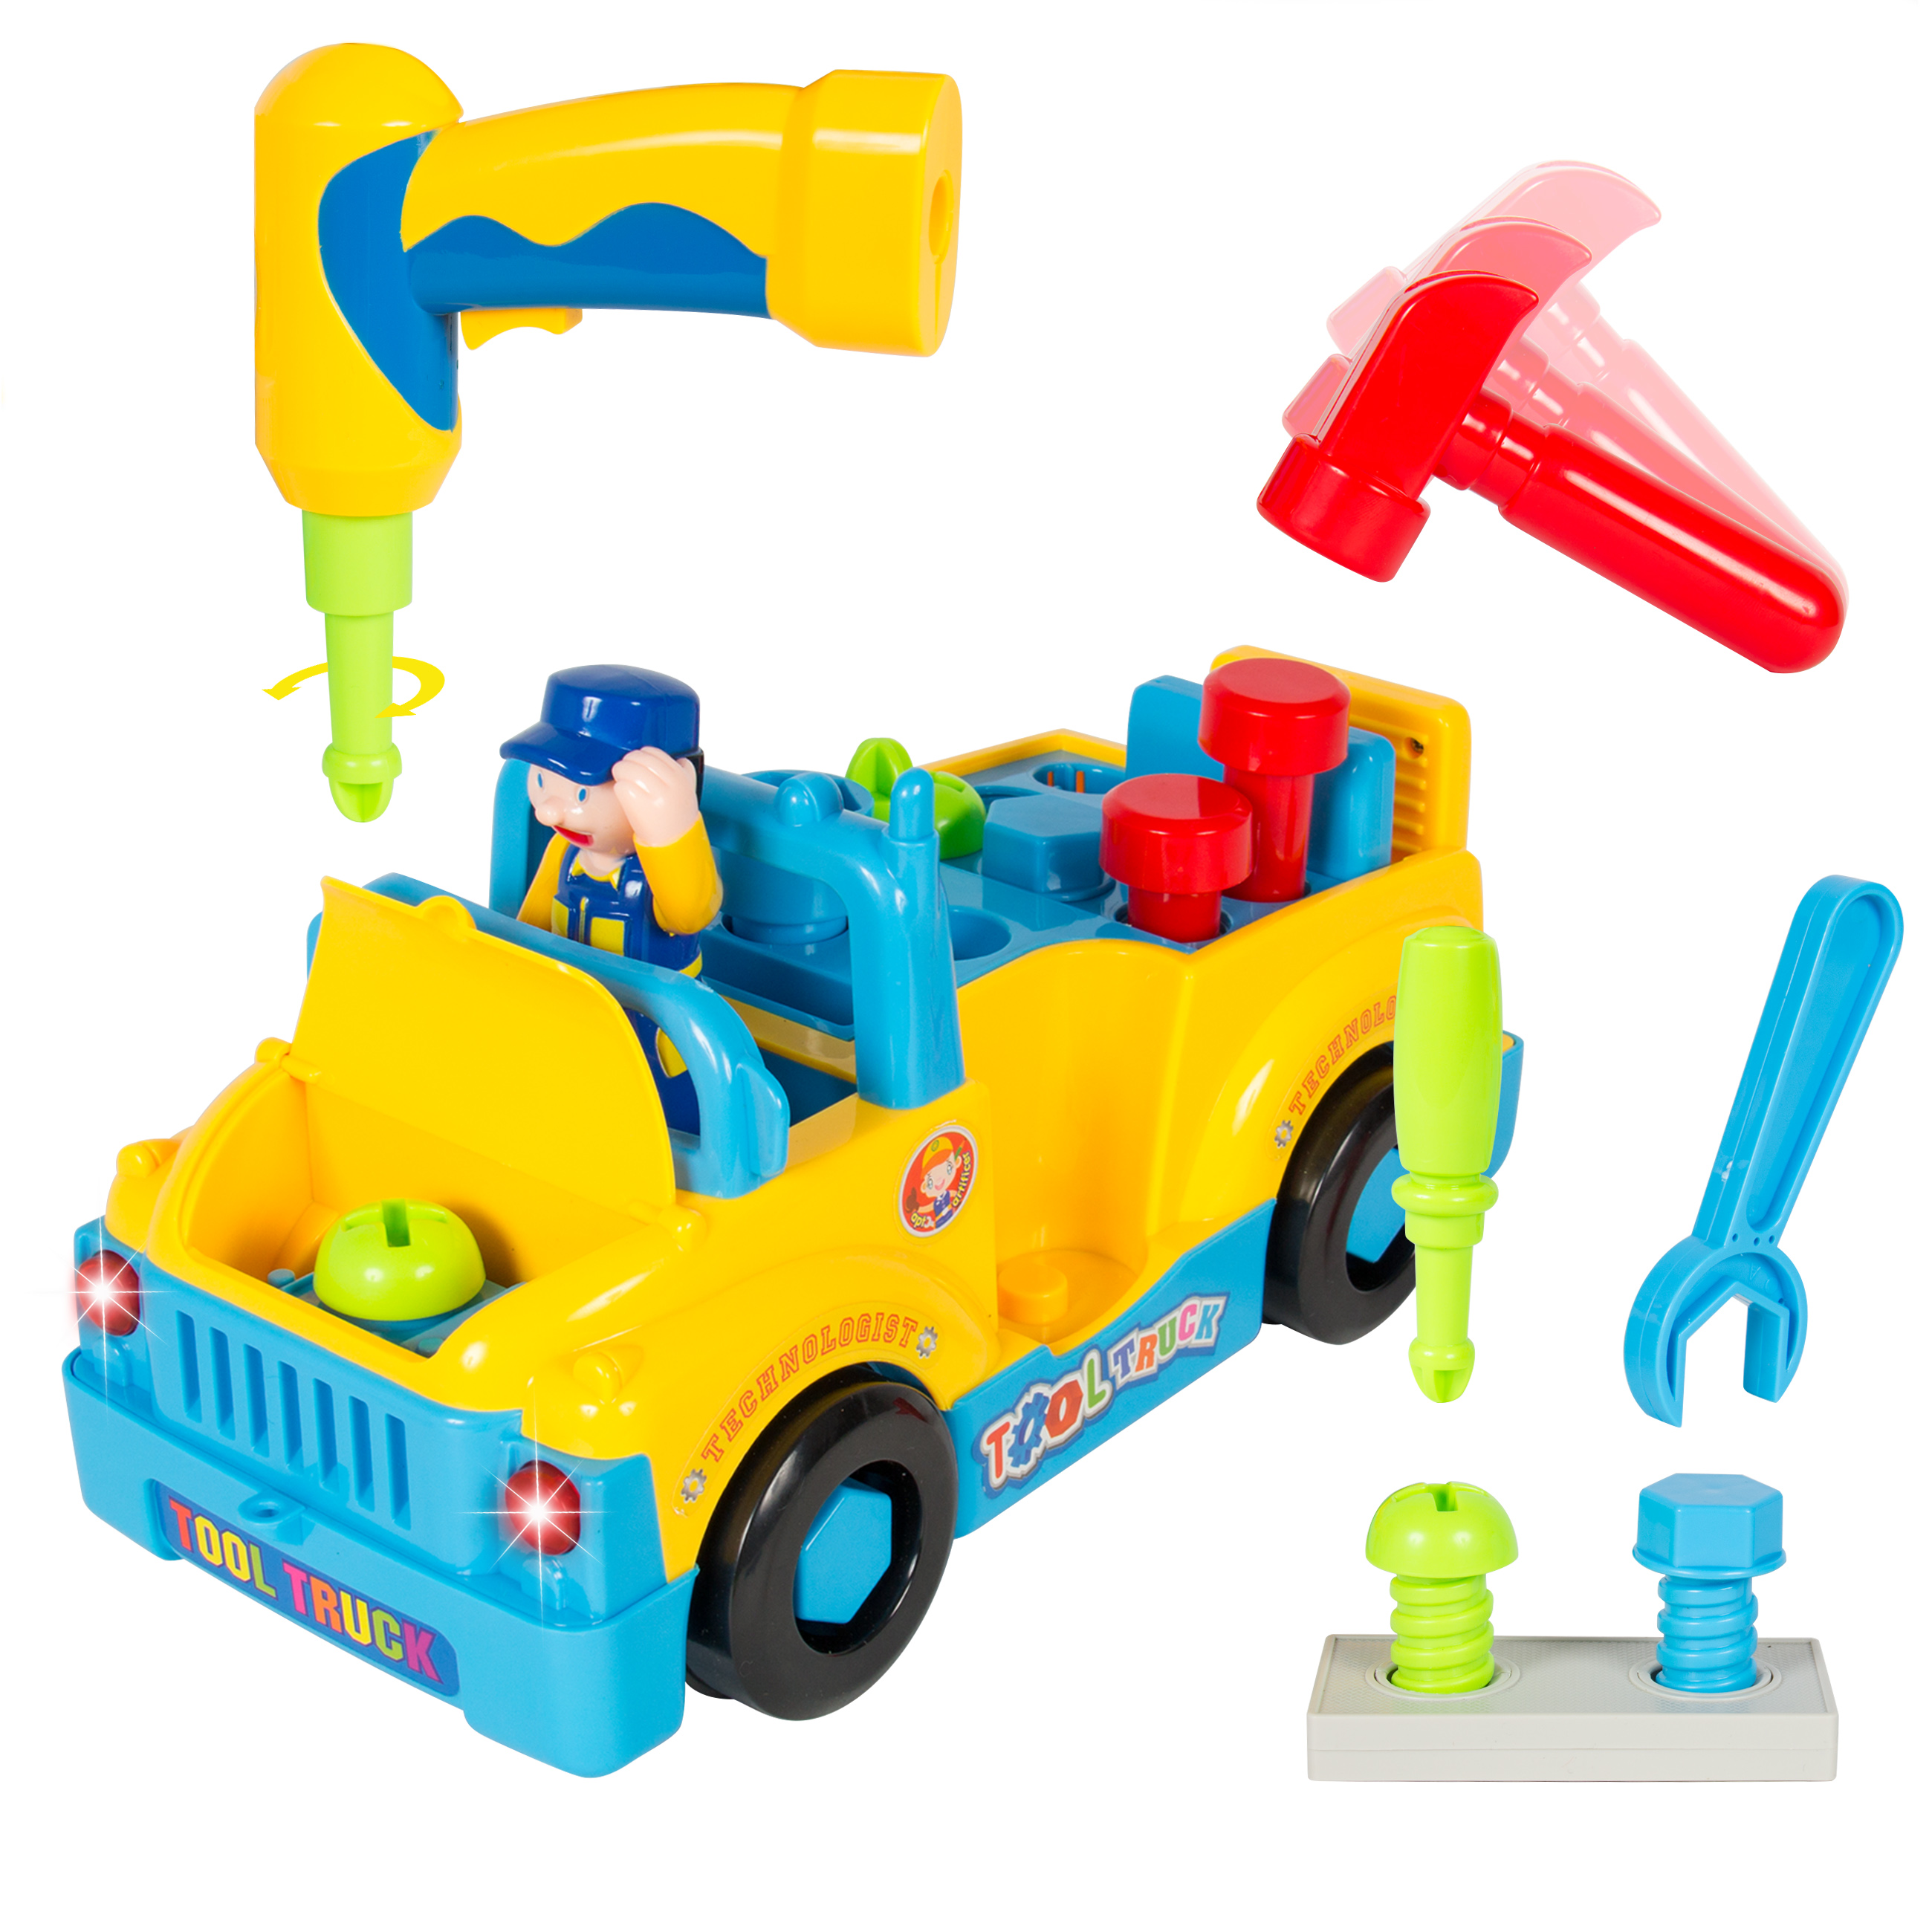 Bump'n'Go Toy Truck With Electric Drill and Various Tools, Lights and Music